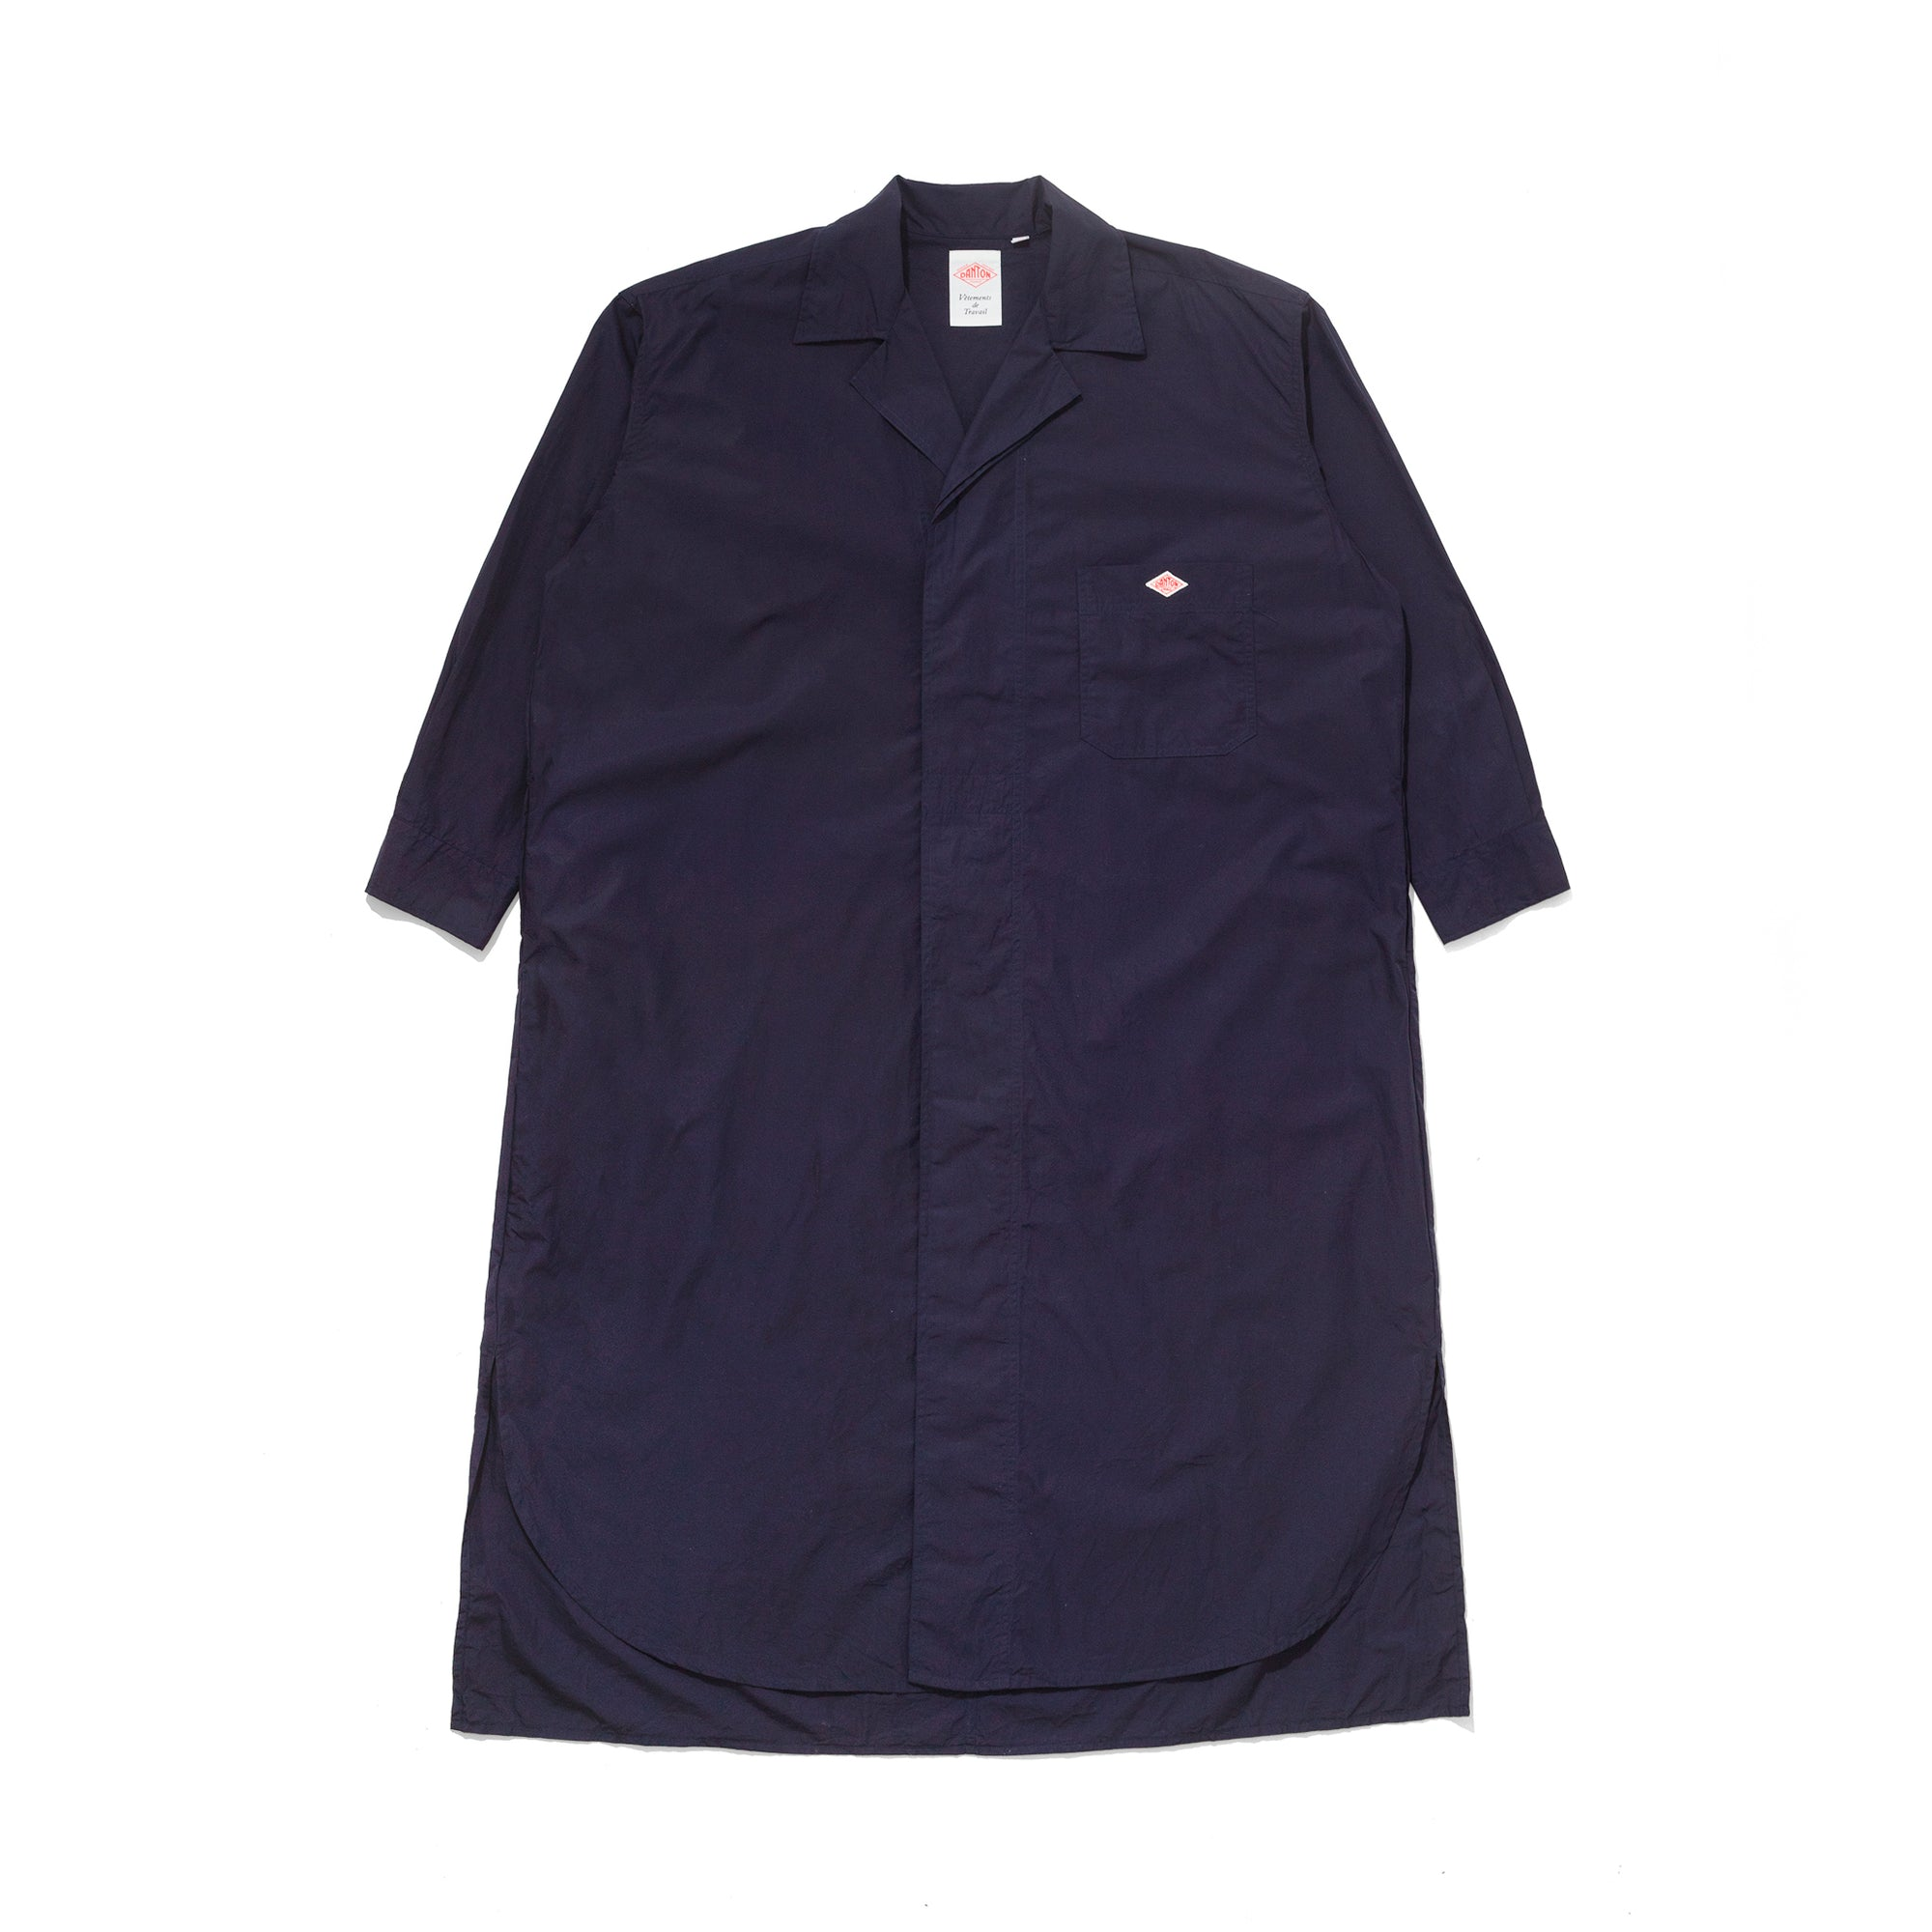 Danton Womens Work Dress: Navy - The Union Project